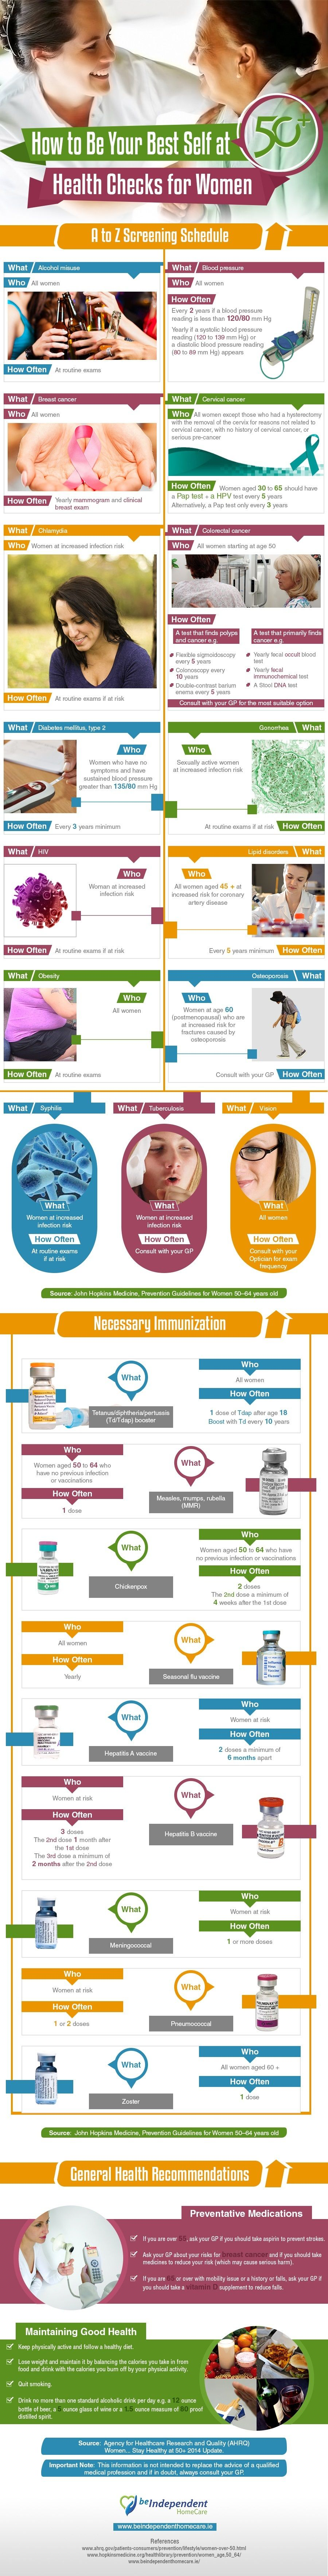 Women's Health in One Important Infographic Health check